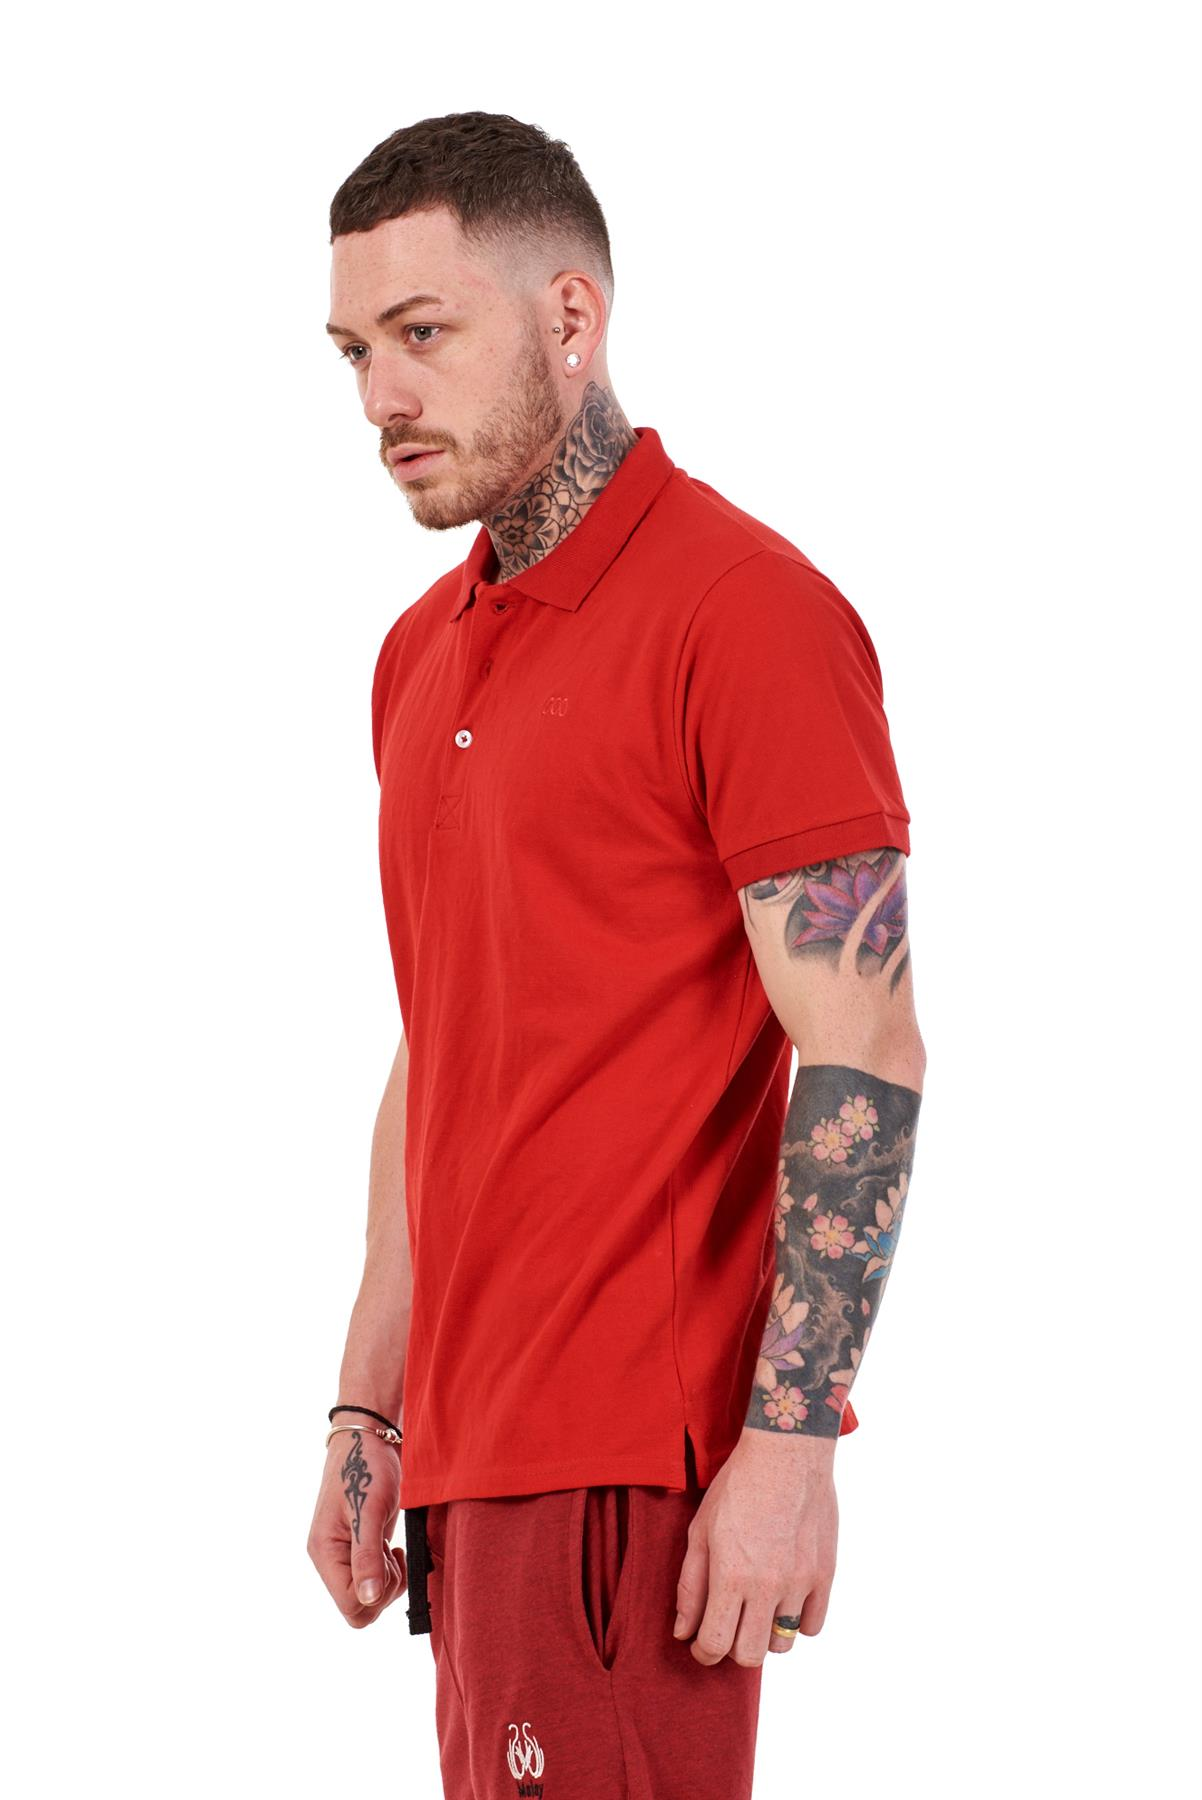 Mens-Plain-Solid-Polo-Cotton-T-Shirts-Regular-fit-Casual-Formal-Shirt-Top-M-XXL thumbnail 30